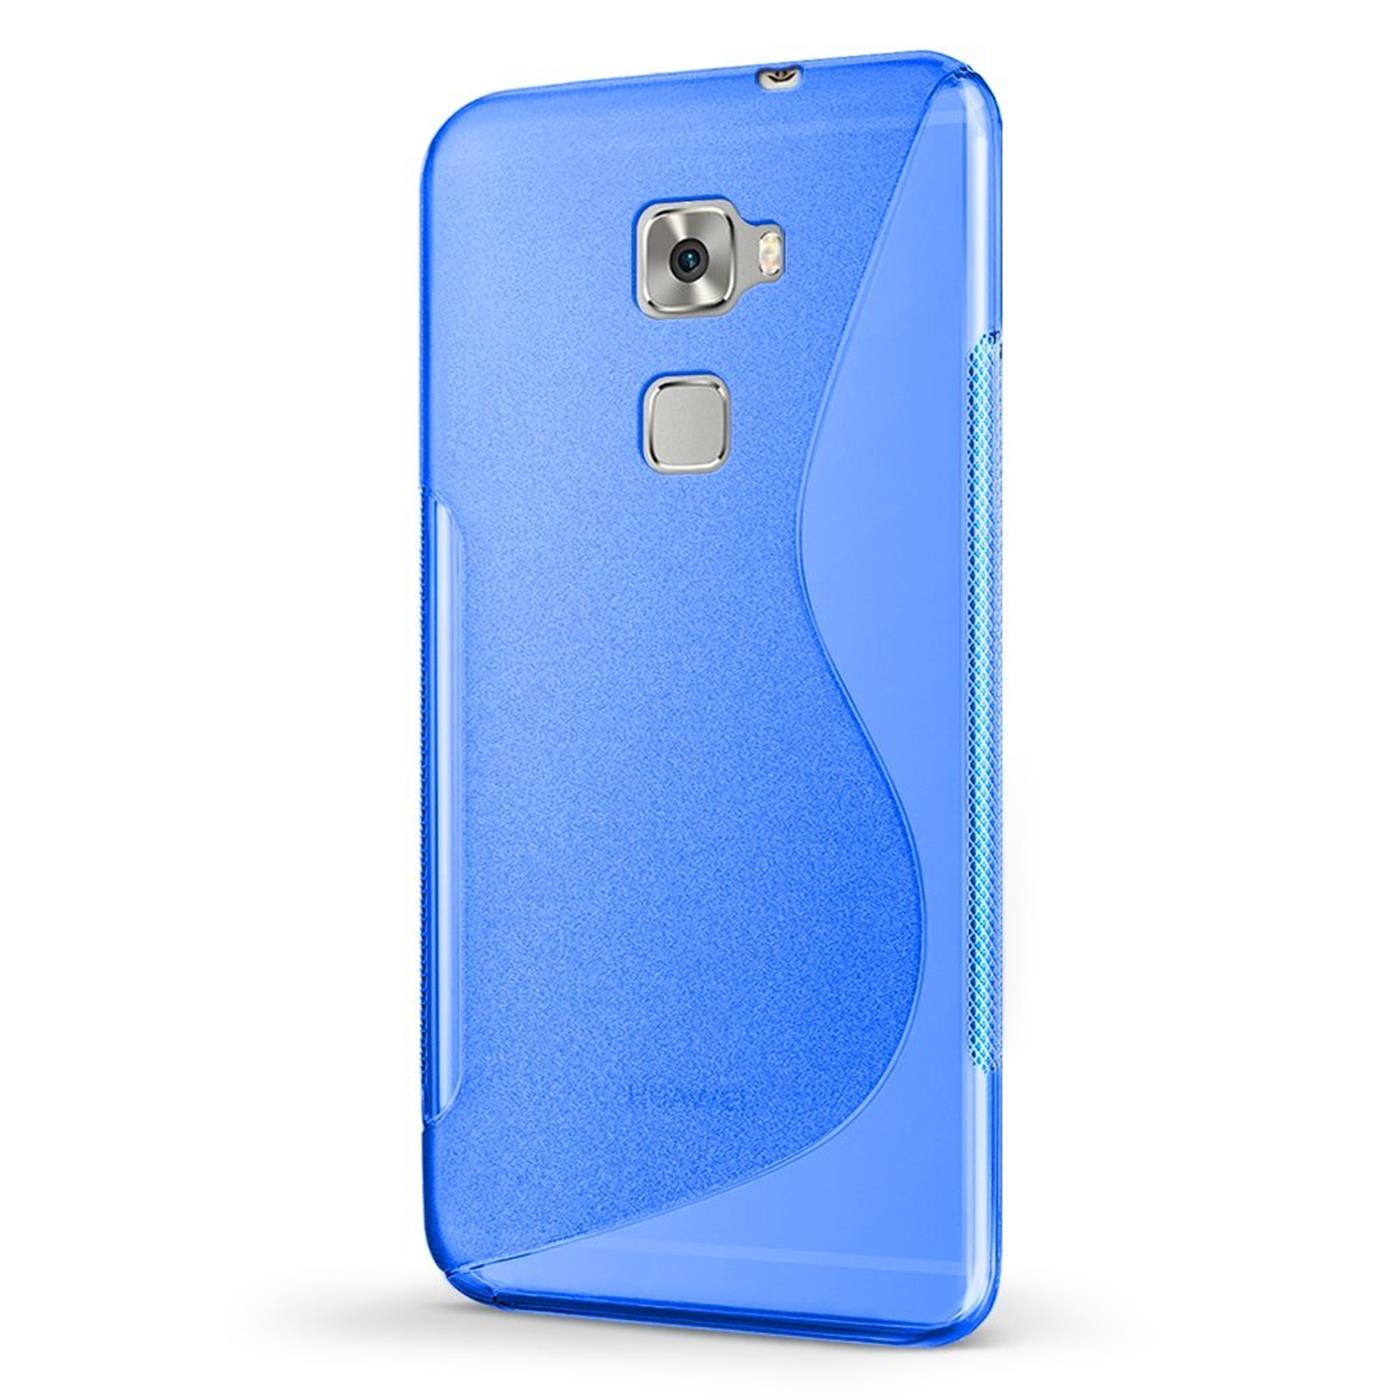 Huawei-Mate-8-Silikon-Gel-S-Line-Case-Cover-Ultra-Thin-Slim-Back-Bumper Indexbild 8